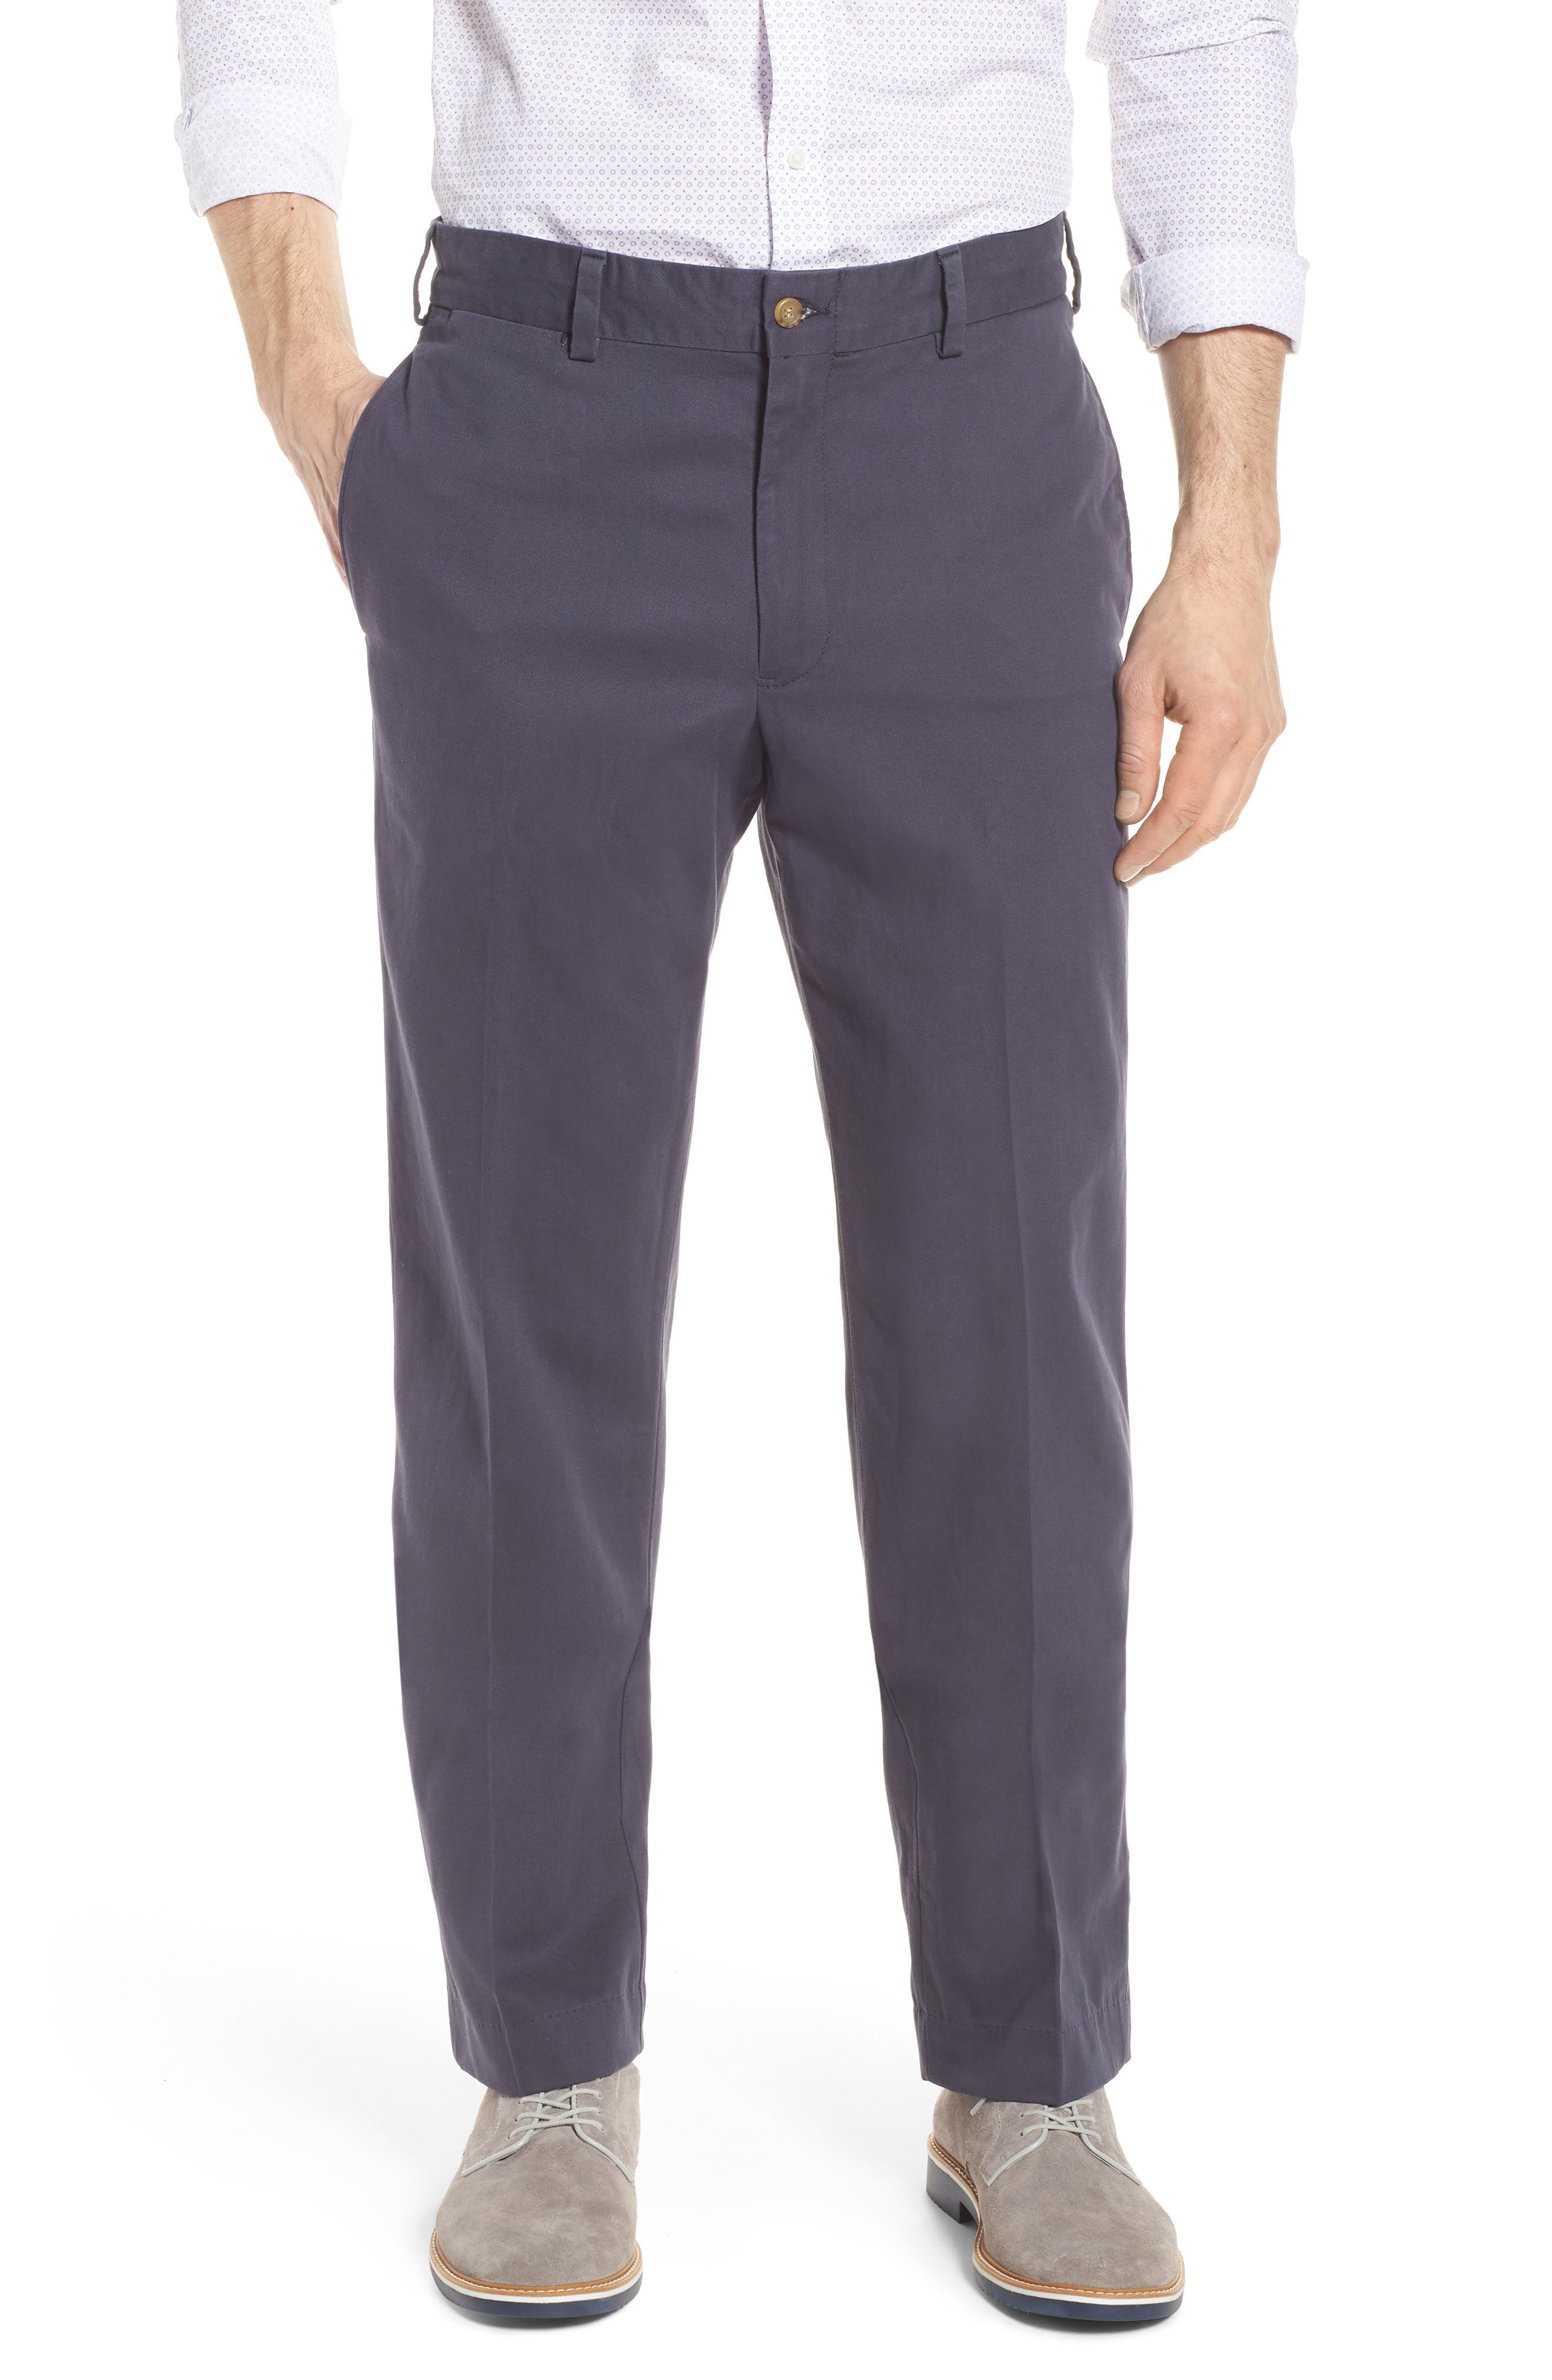 M2 Classic Fit Flat Front Vintage Twill Pants,                         Main,                         color, Navy